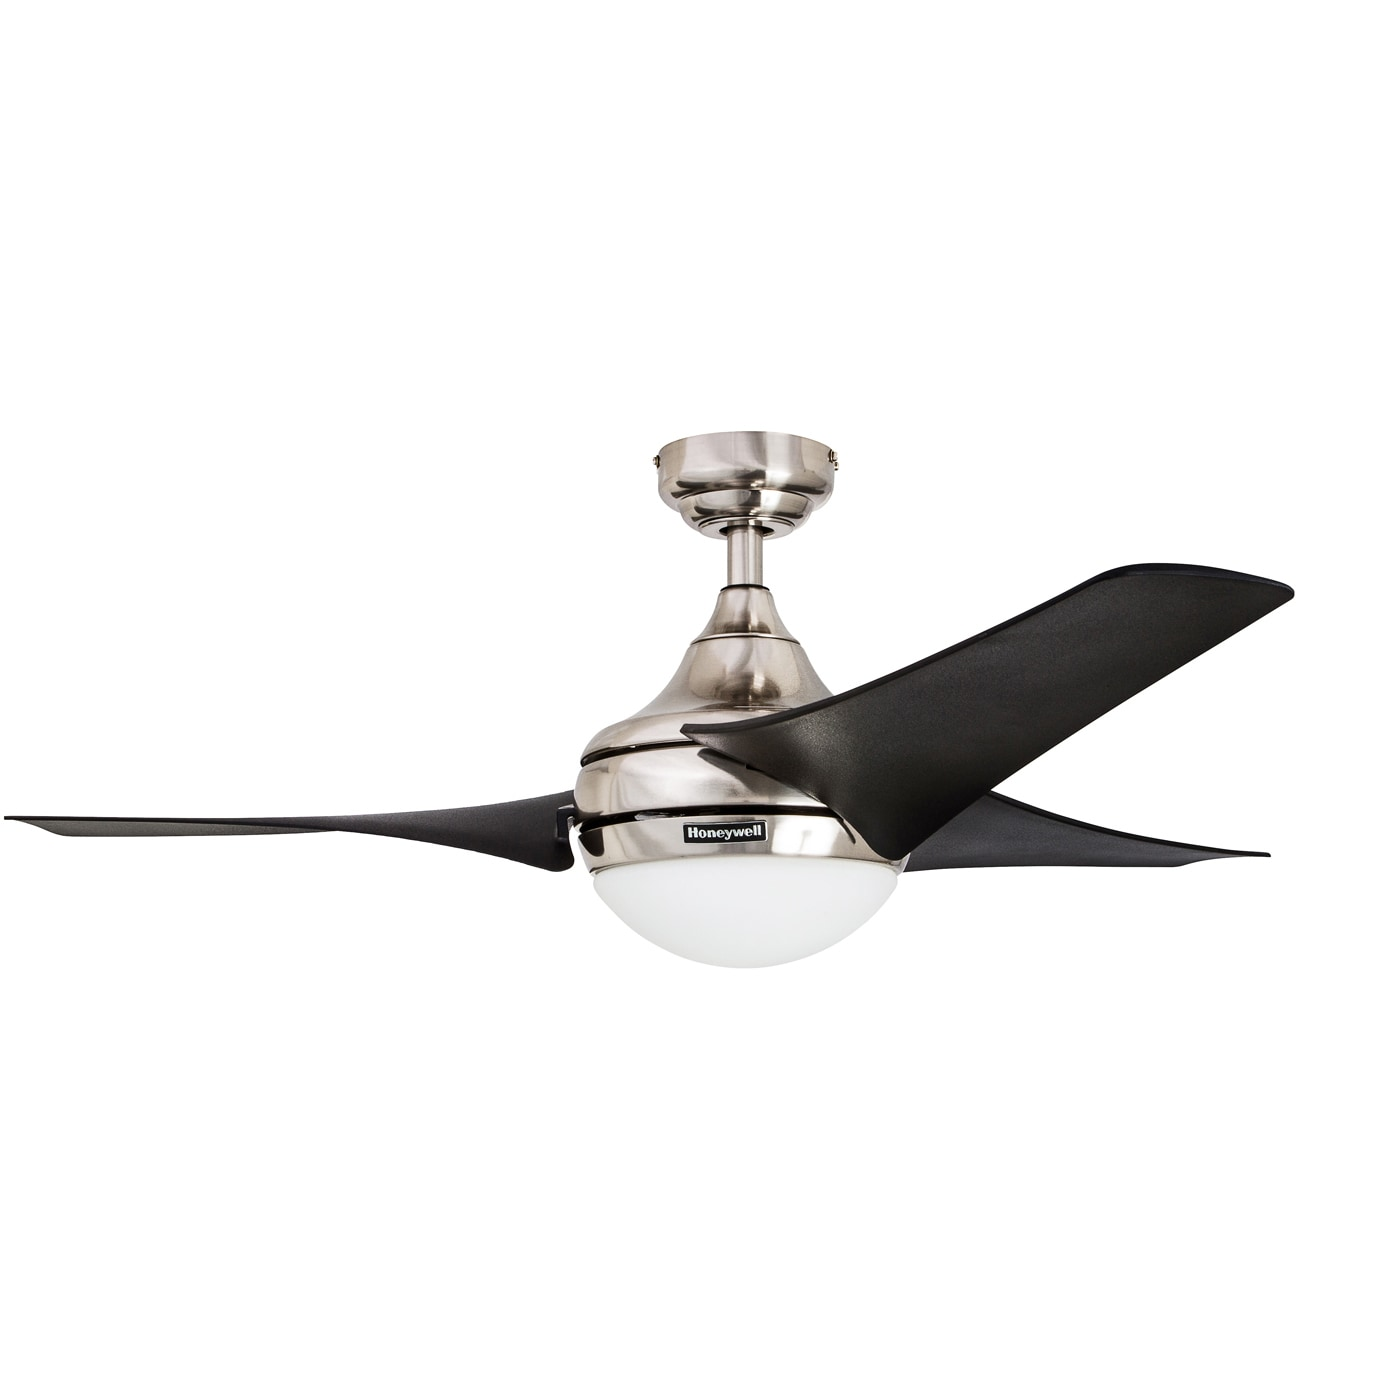 "54"" Honeywell Rio Brushed Nickel 3 Blade Ceiling Fan with"